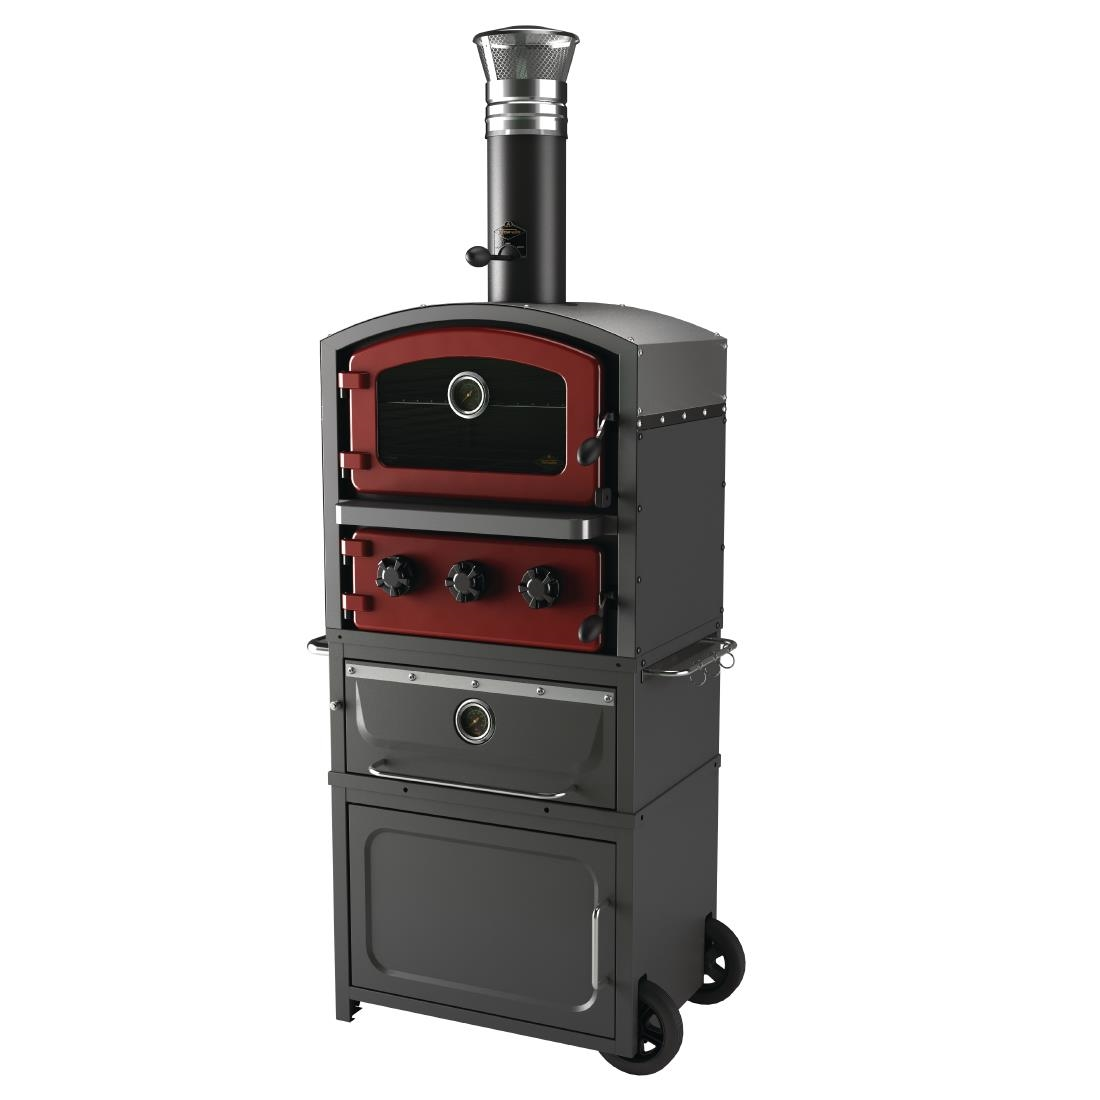 Fornetto Alto Wood Fired Oven and Smoker Brick GLPZ7EUR